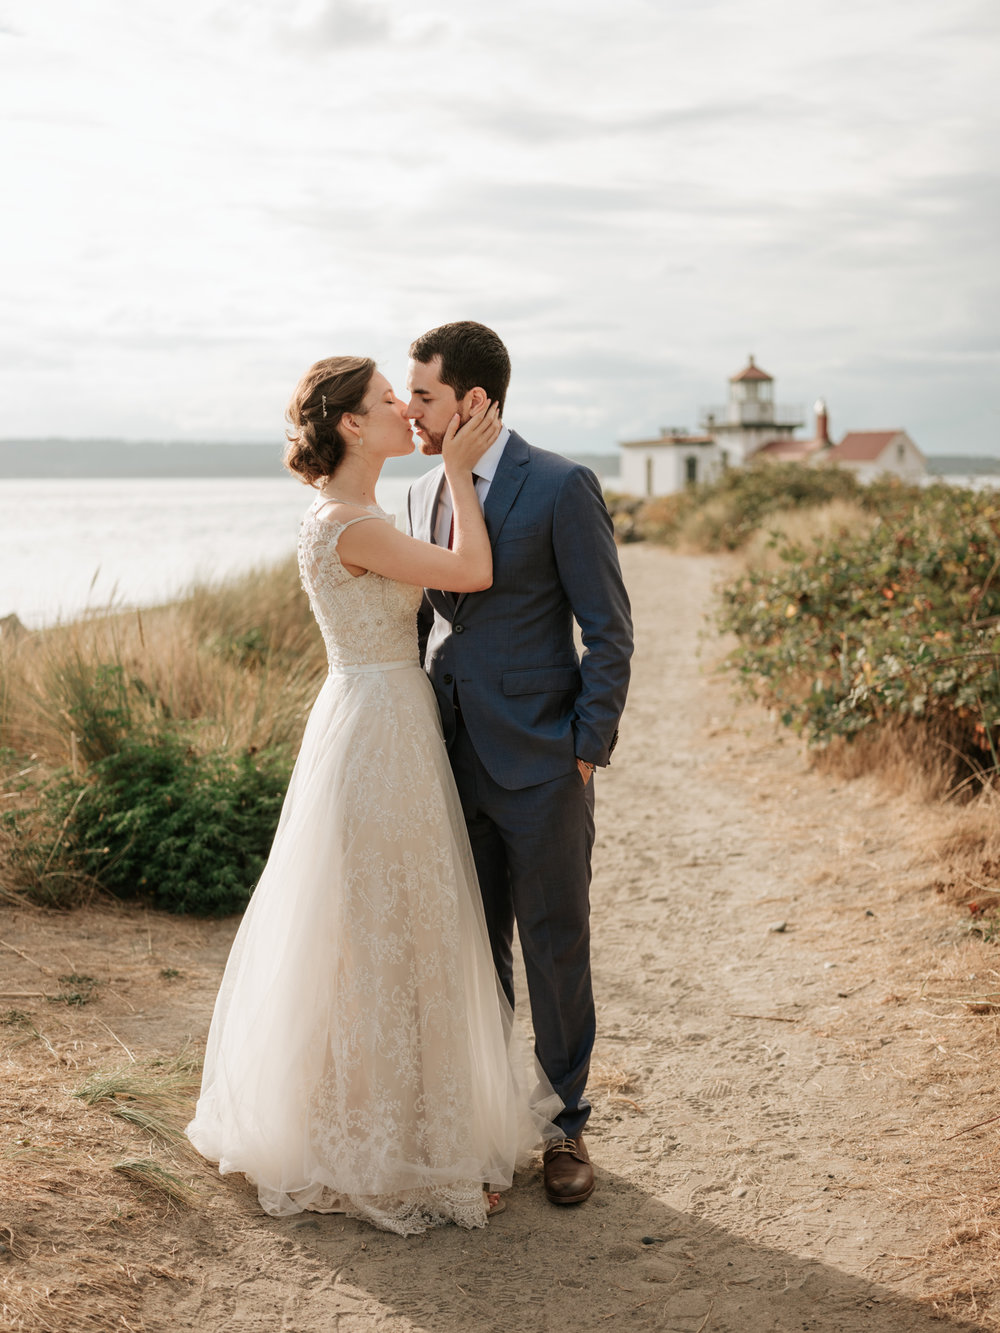 Stolen Glimpses Seattle Wedding Photographer at Discovery Park58.jpg